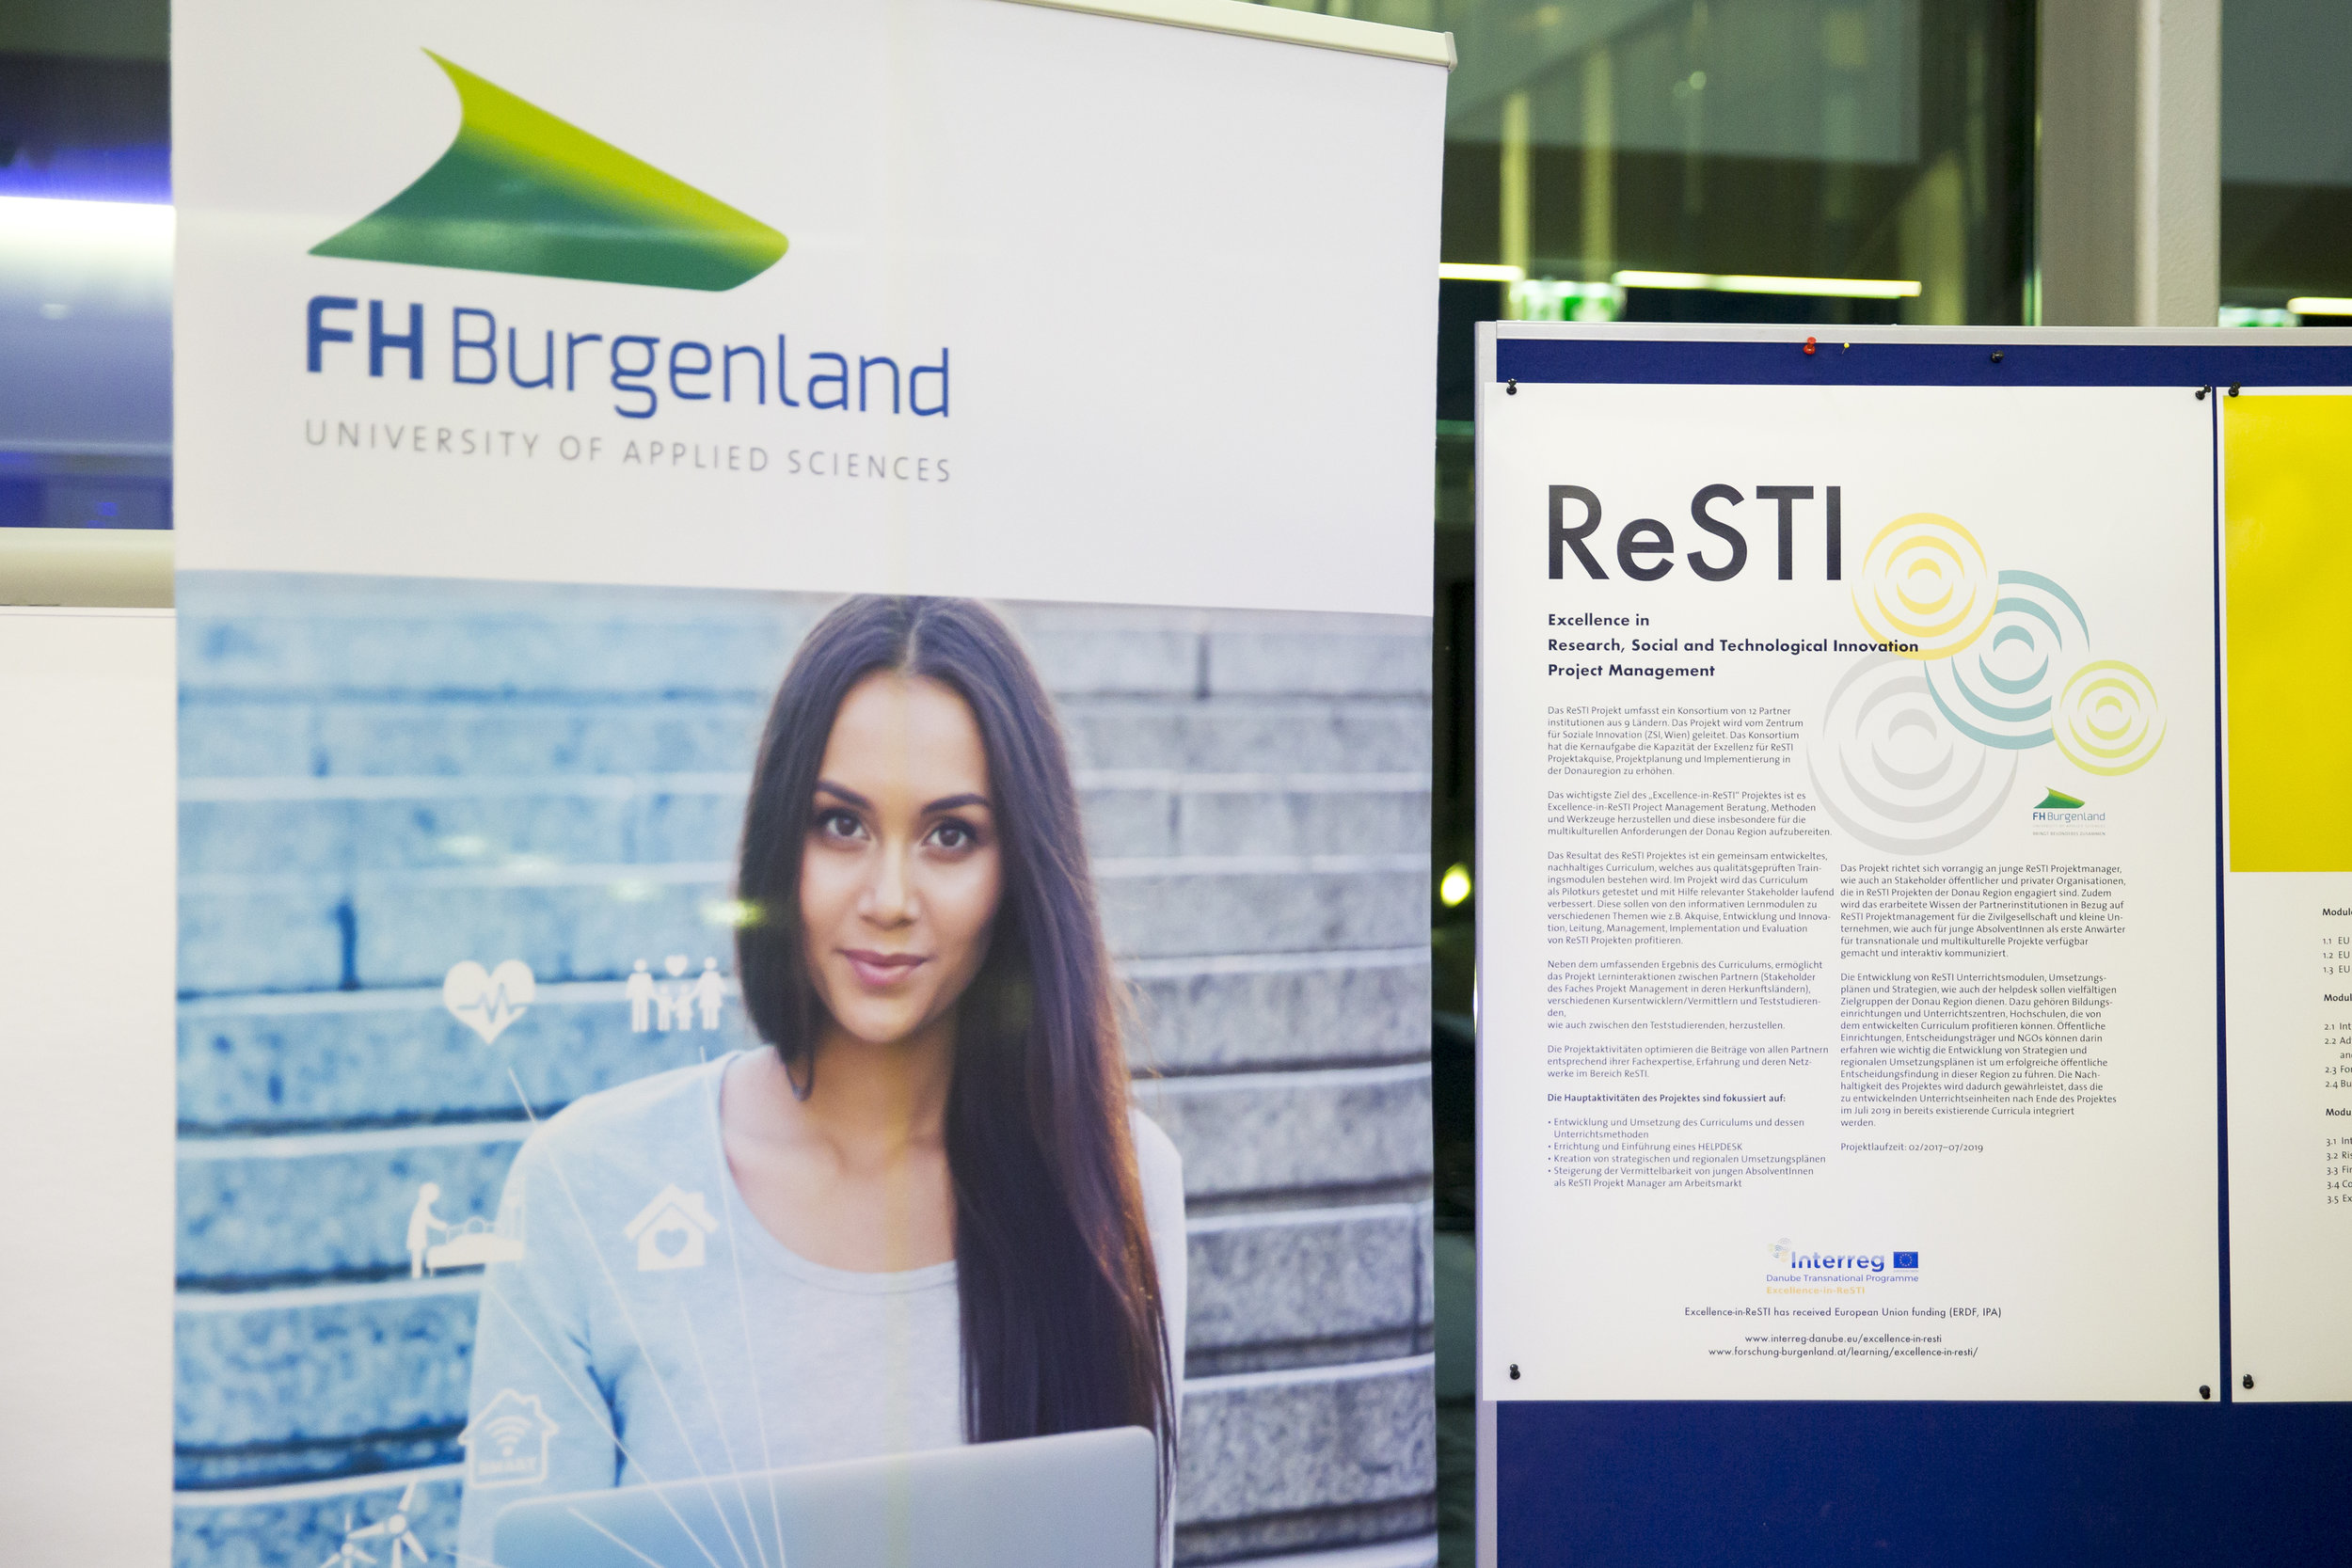 Excellence in Research, Social and Technological Innovation Project Management (ReSTI)